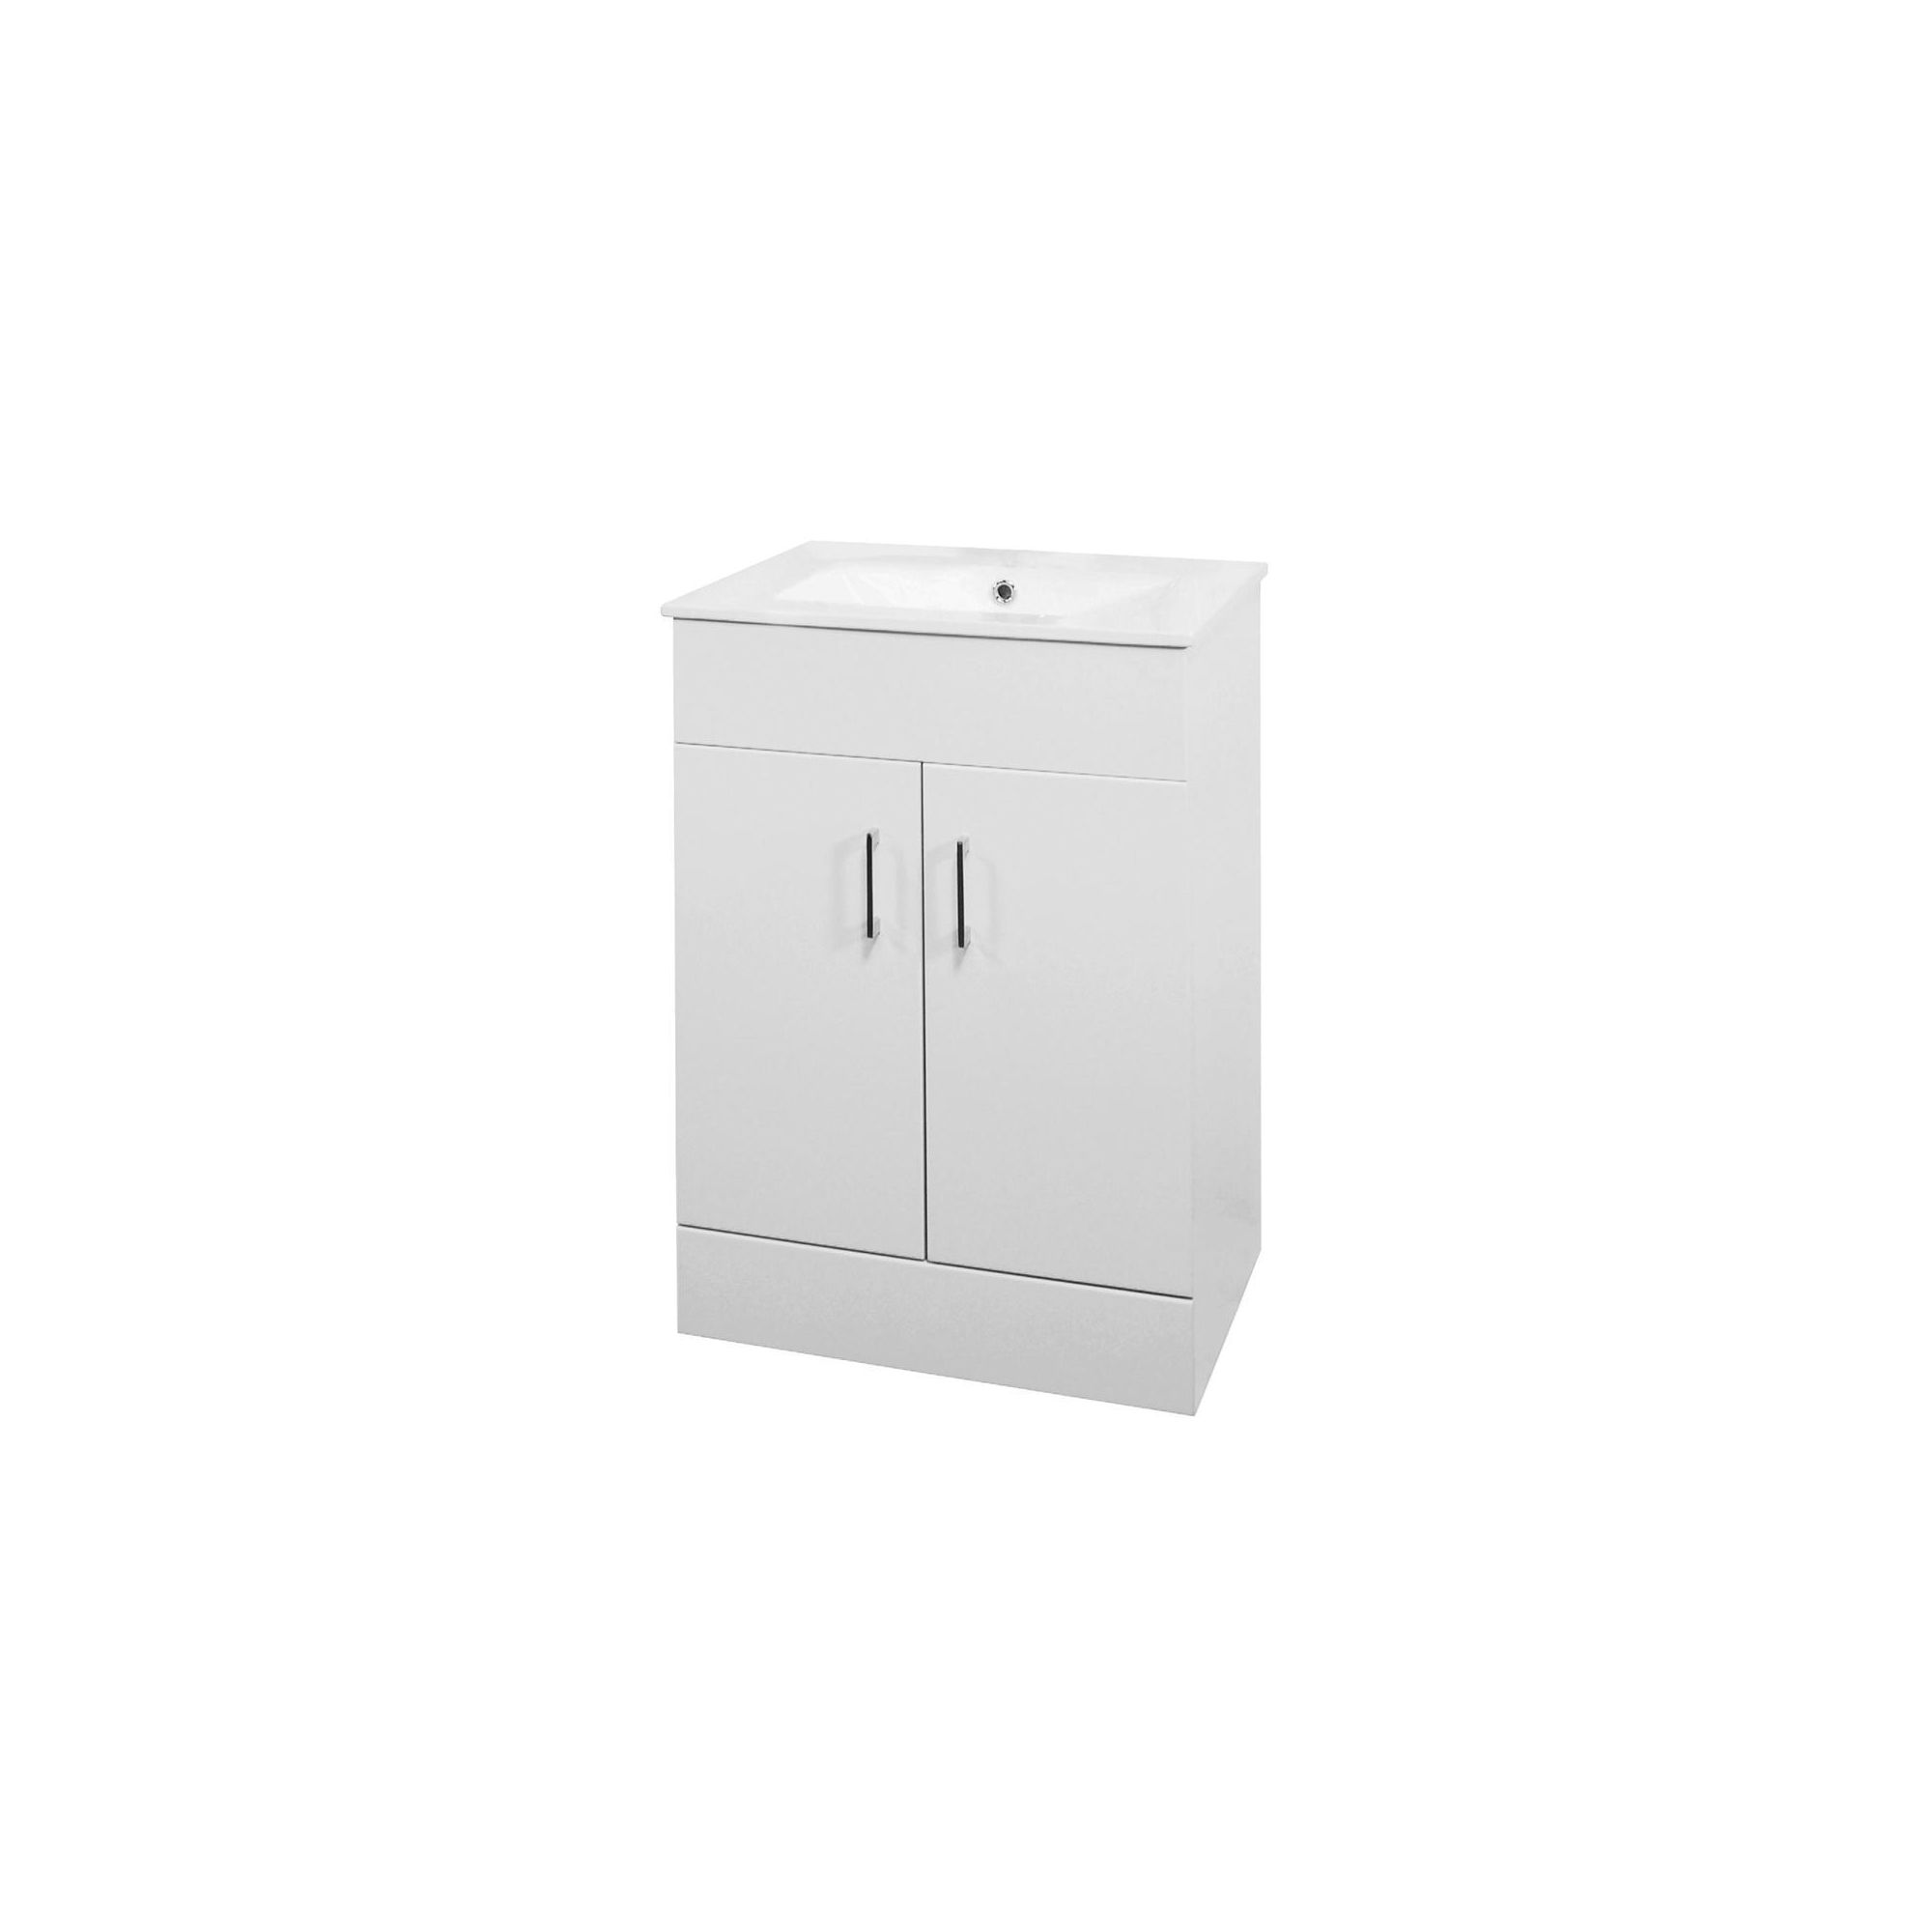 Premier Minimalist Basin Vanity Unit White 600mm